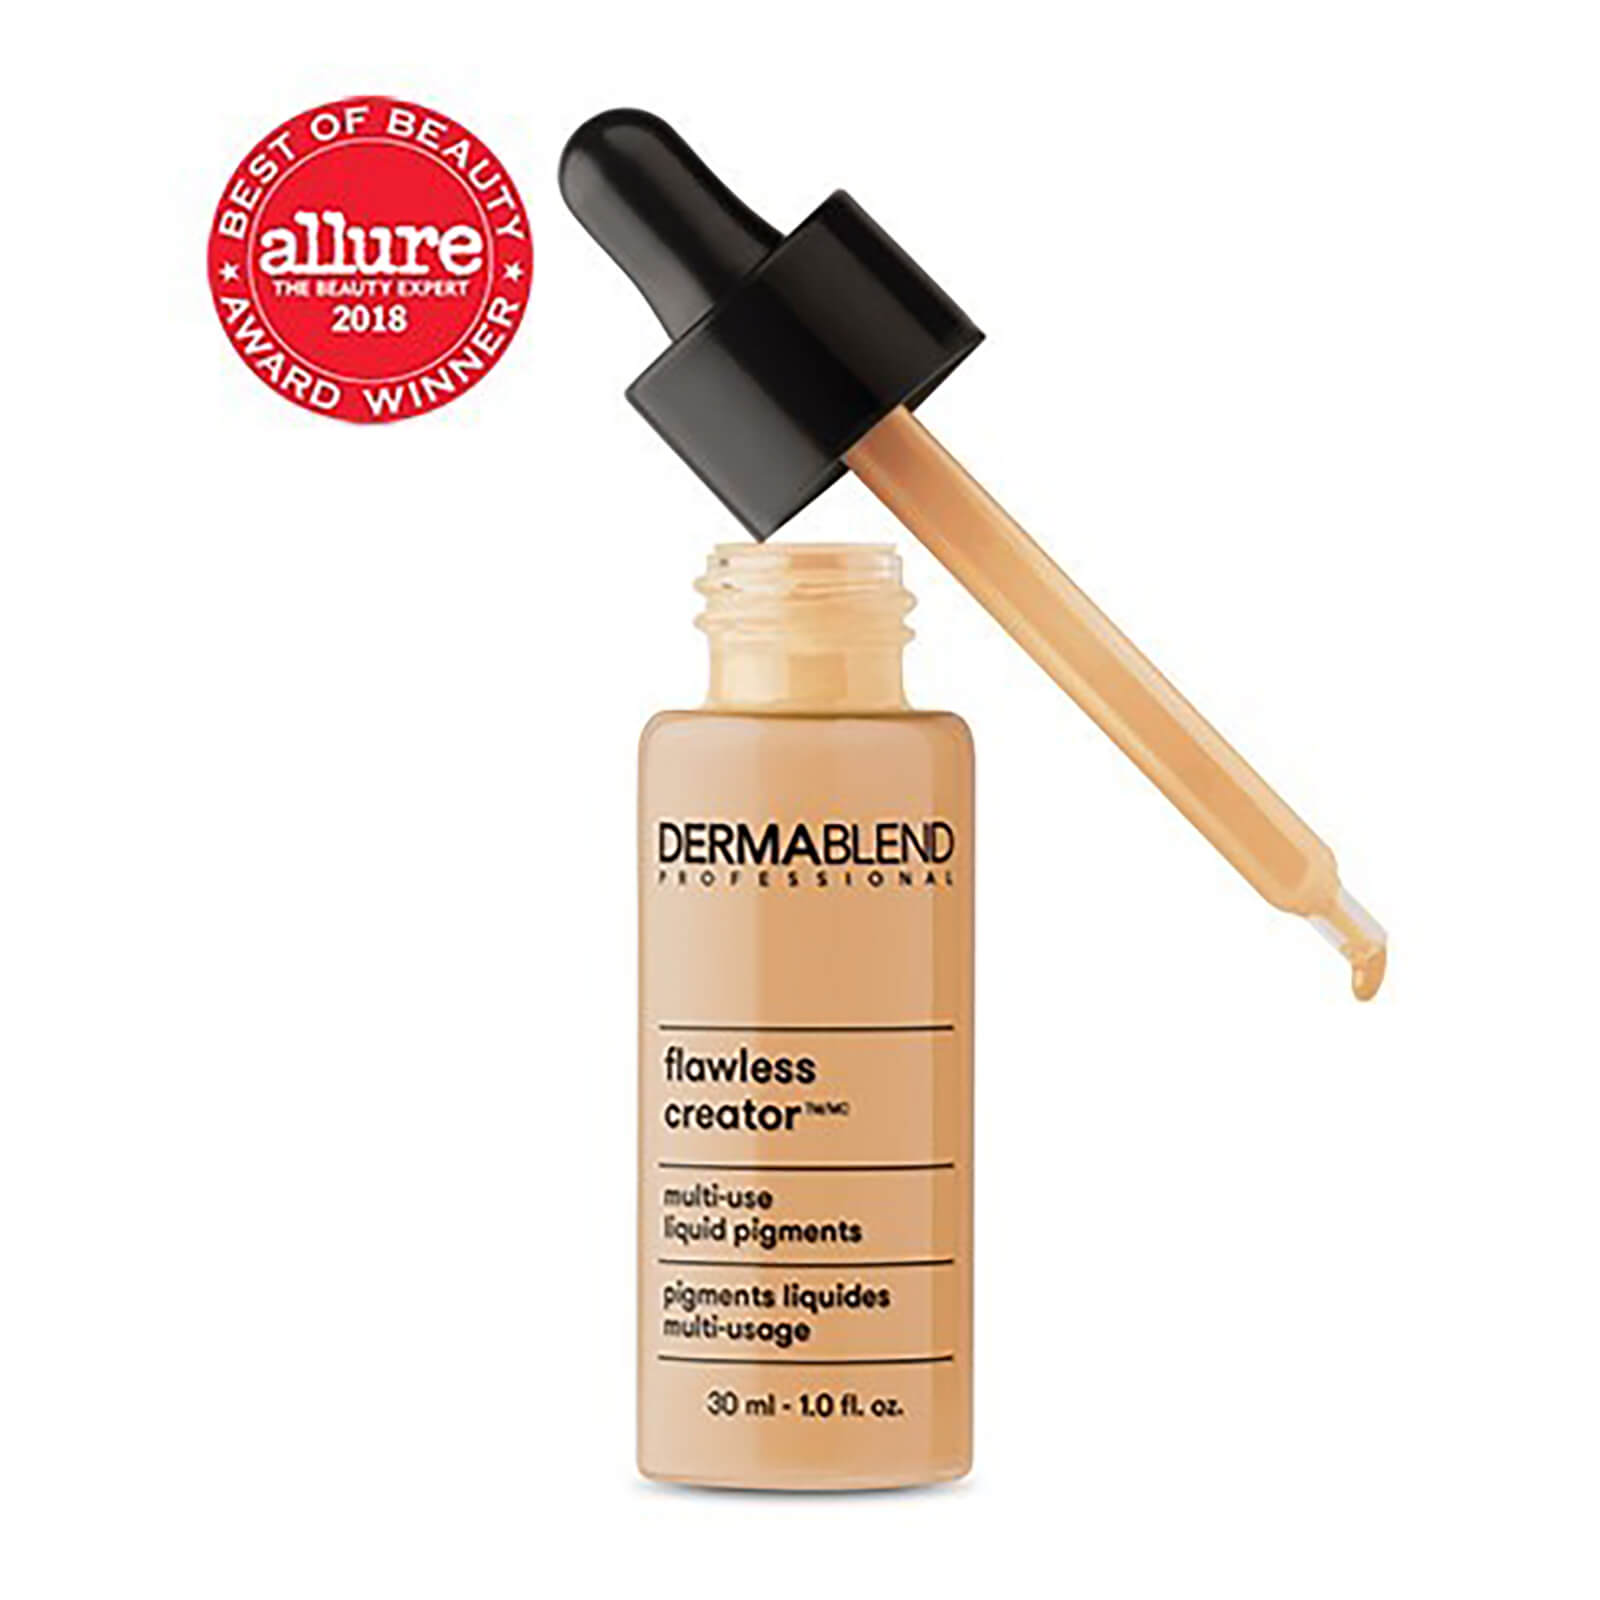 Dermablend Flawless Creator Liquid Foundation Drops 1 Fl Oz Various Shades Skinstore